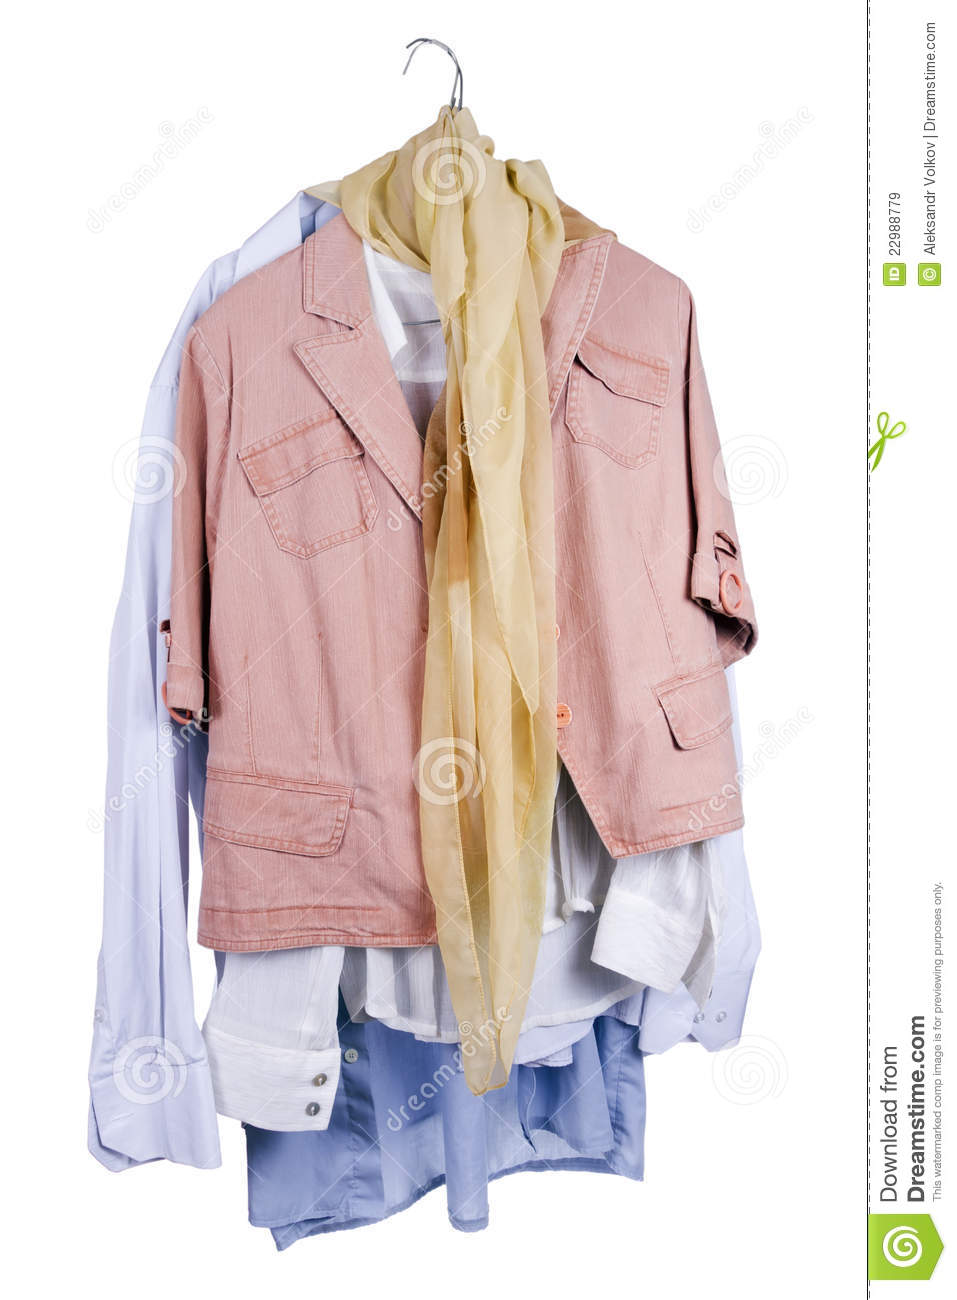 Womenu0026#39;s And Menu0026#39;s Clothes Hanging On A Hanger Stock Image - Image Of Clothing Assortment 22988779